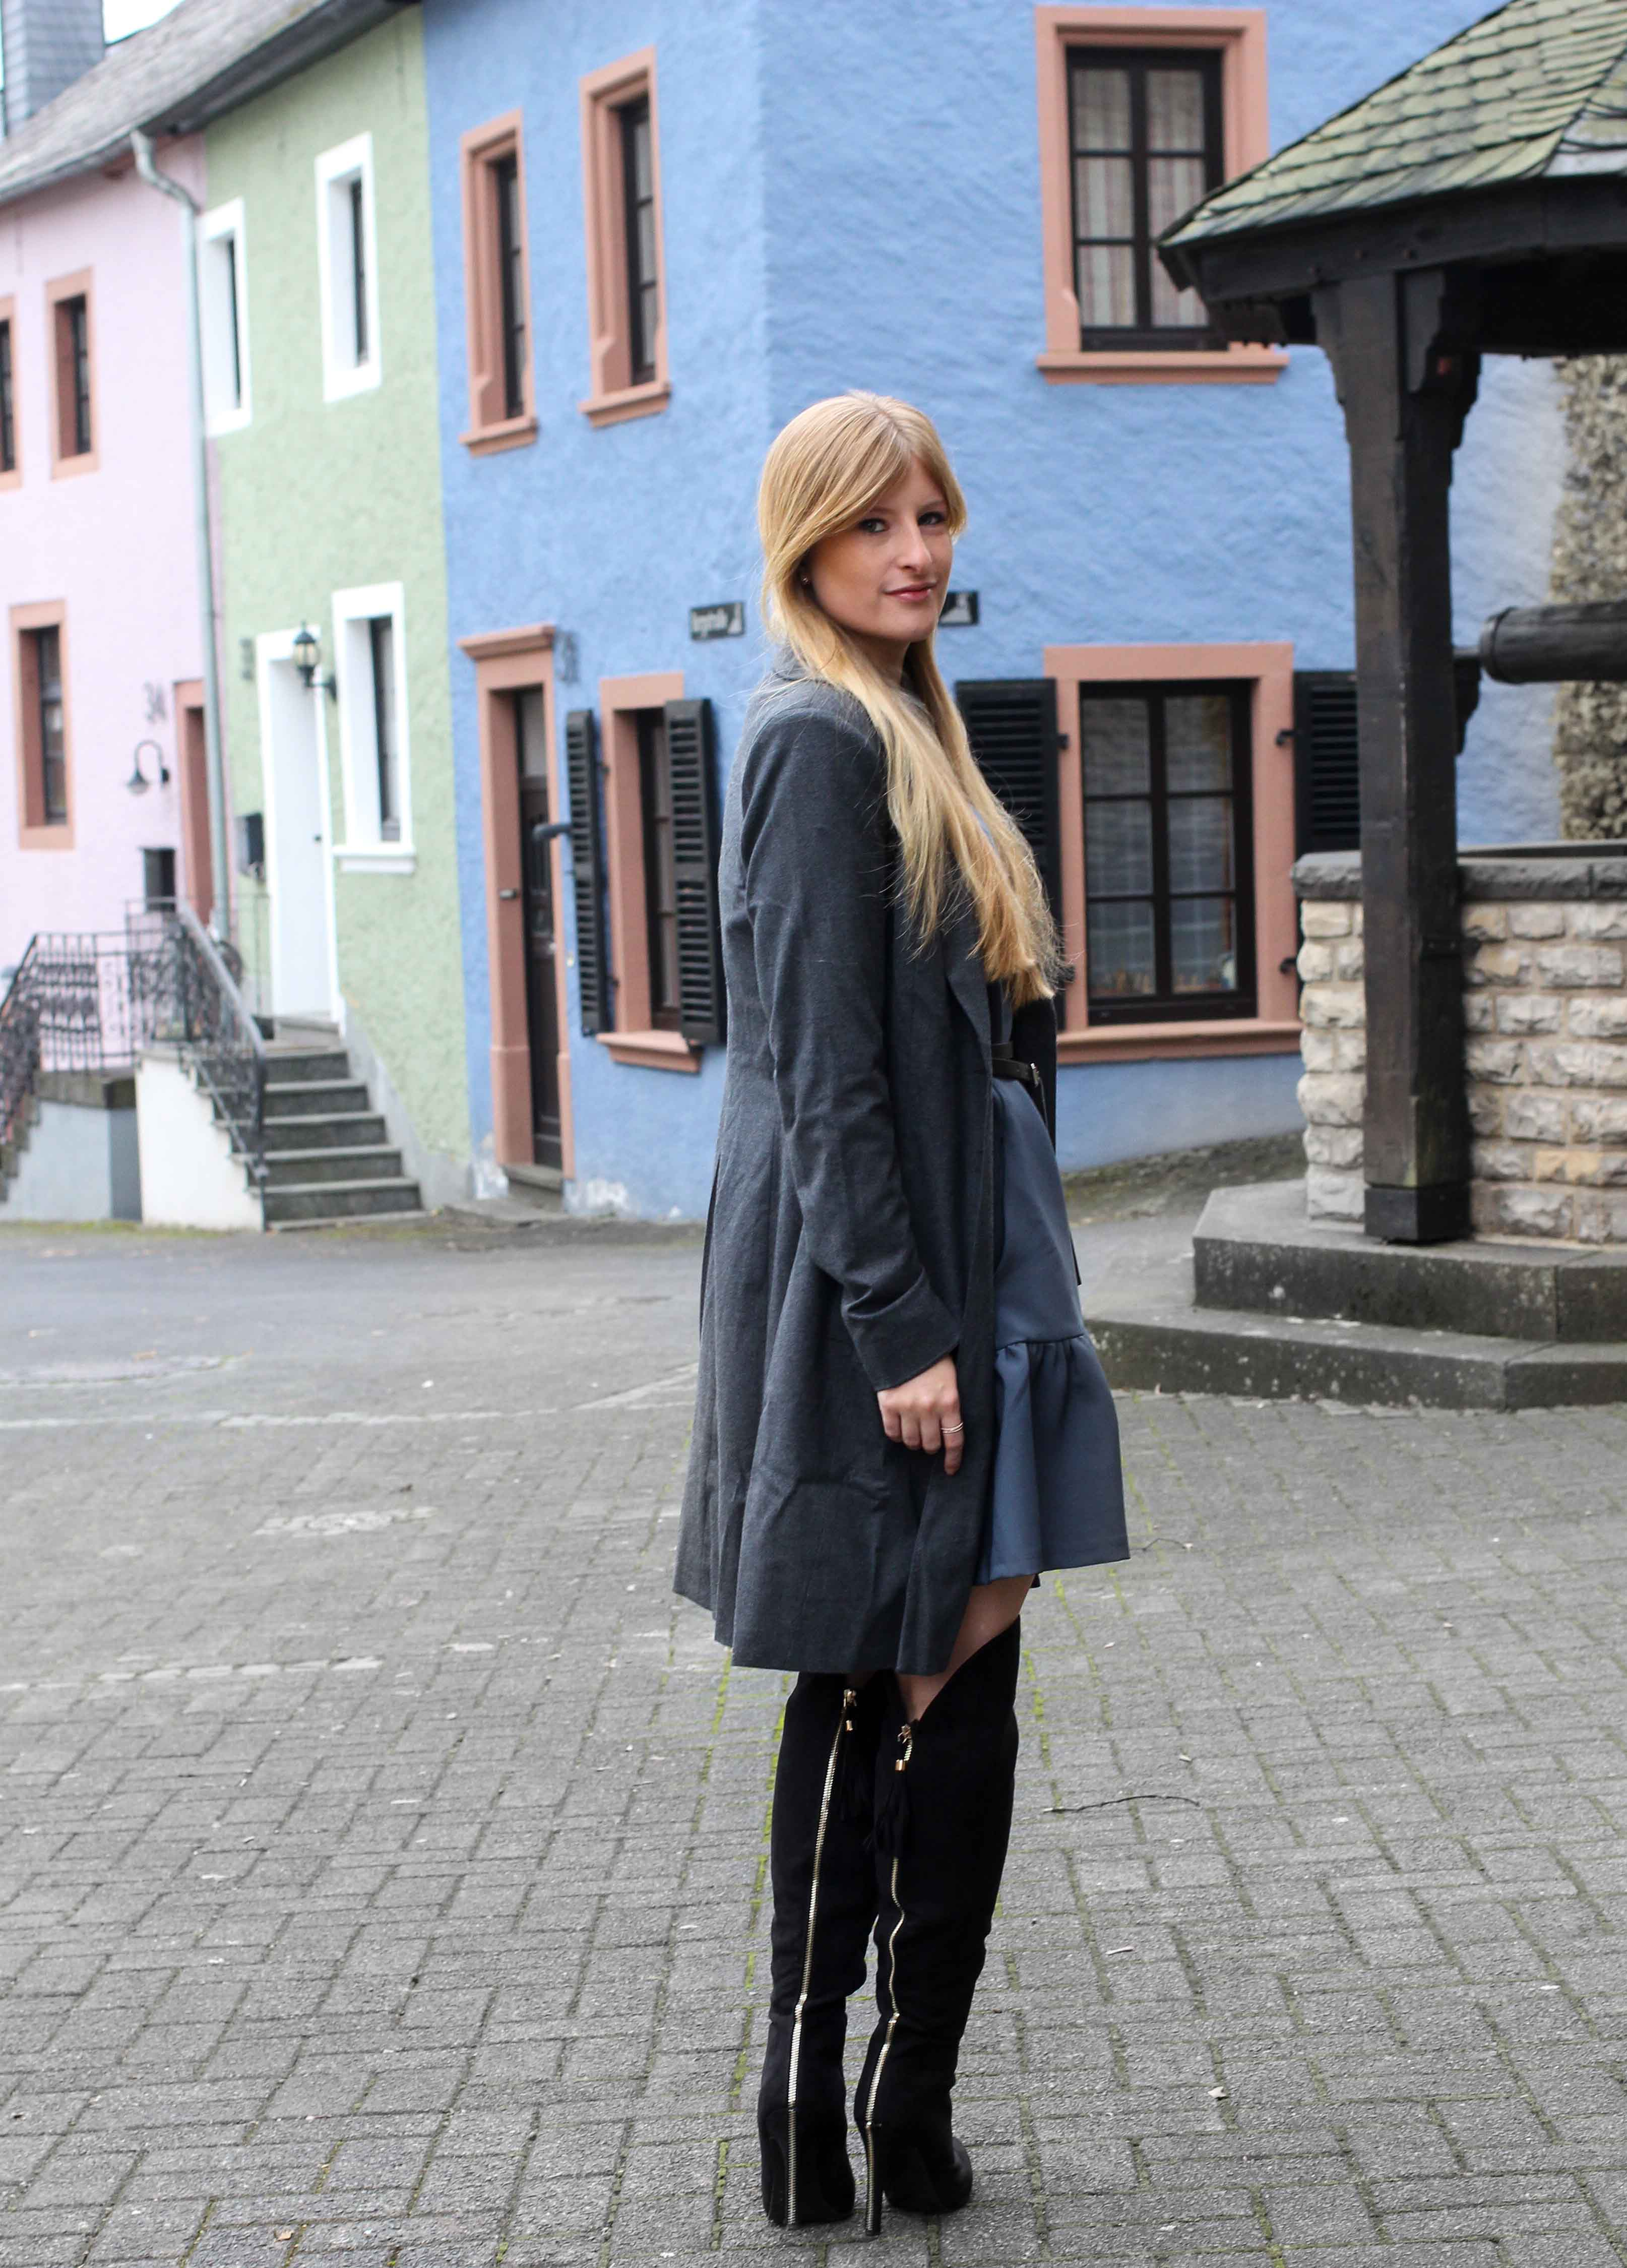 Closet London grauer Mantel schwarze Overknees Winter Outfit Modeblog 5